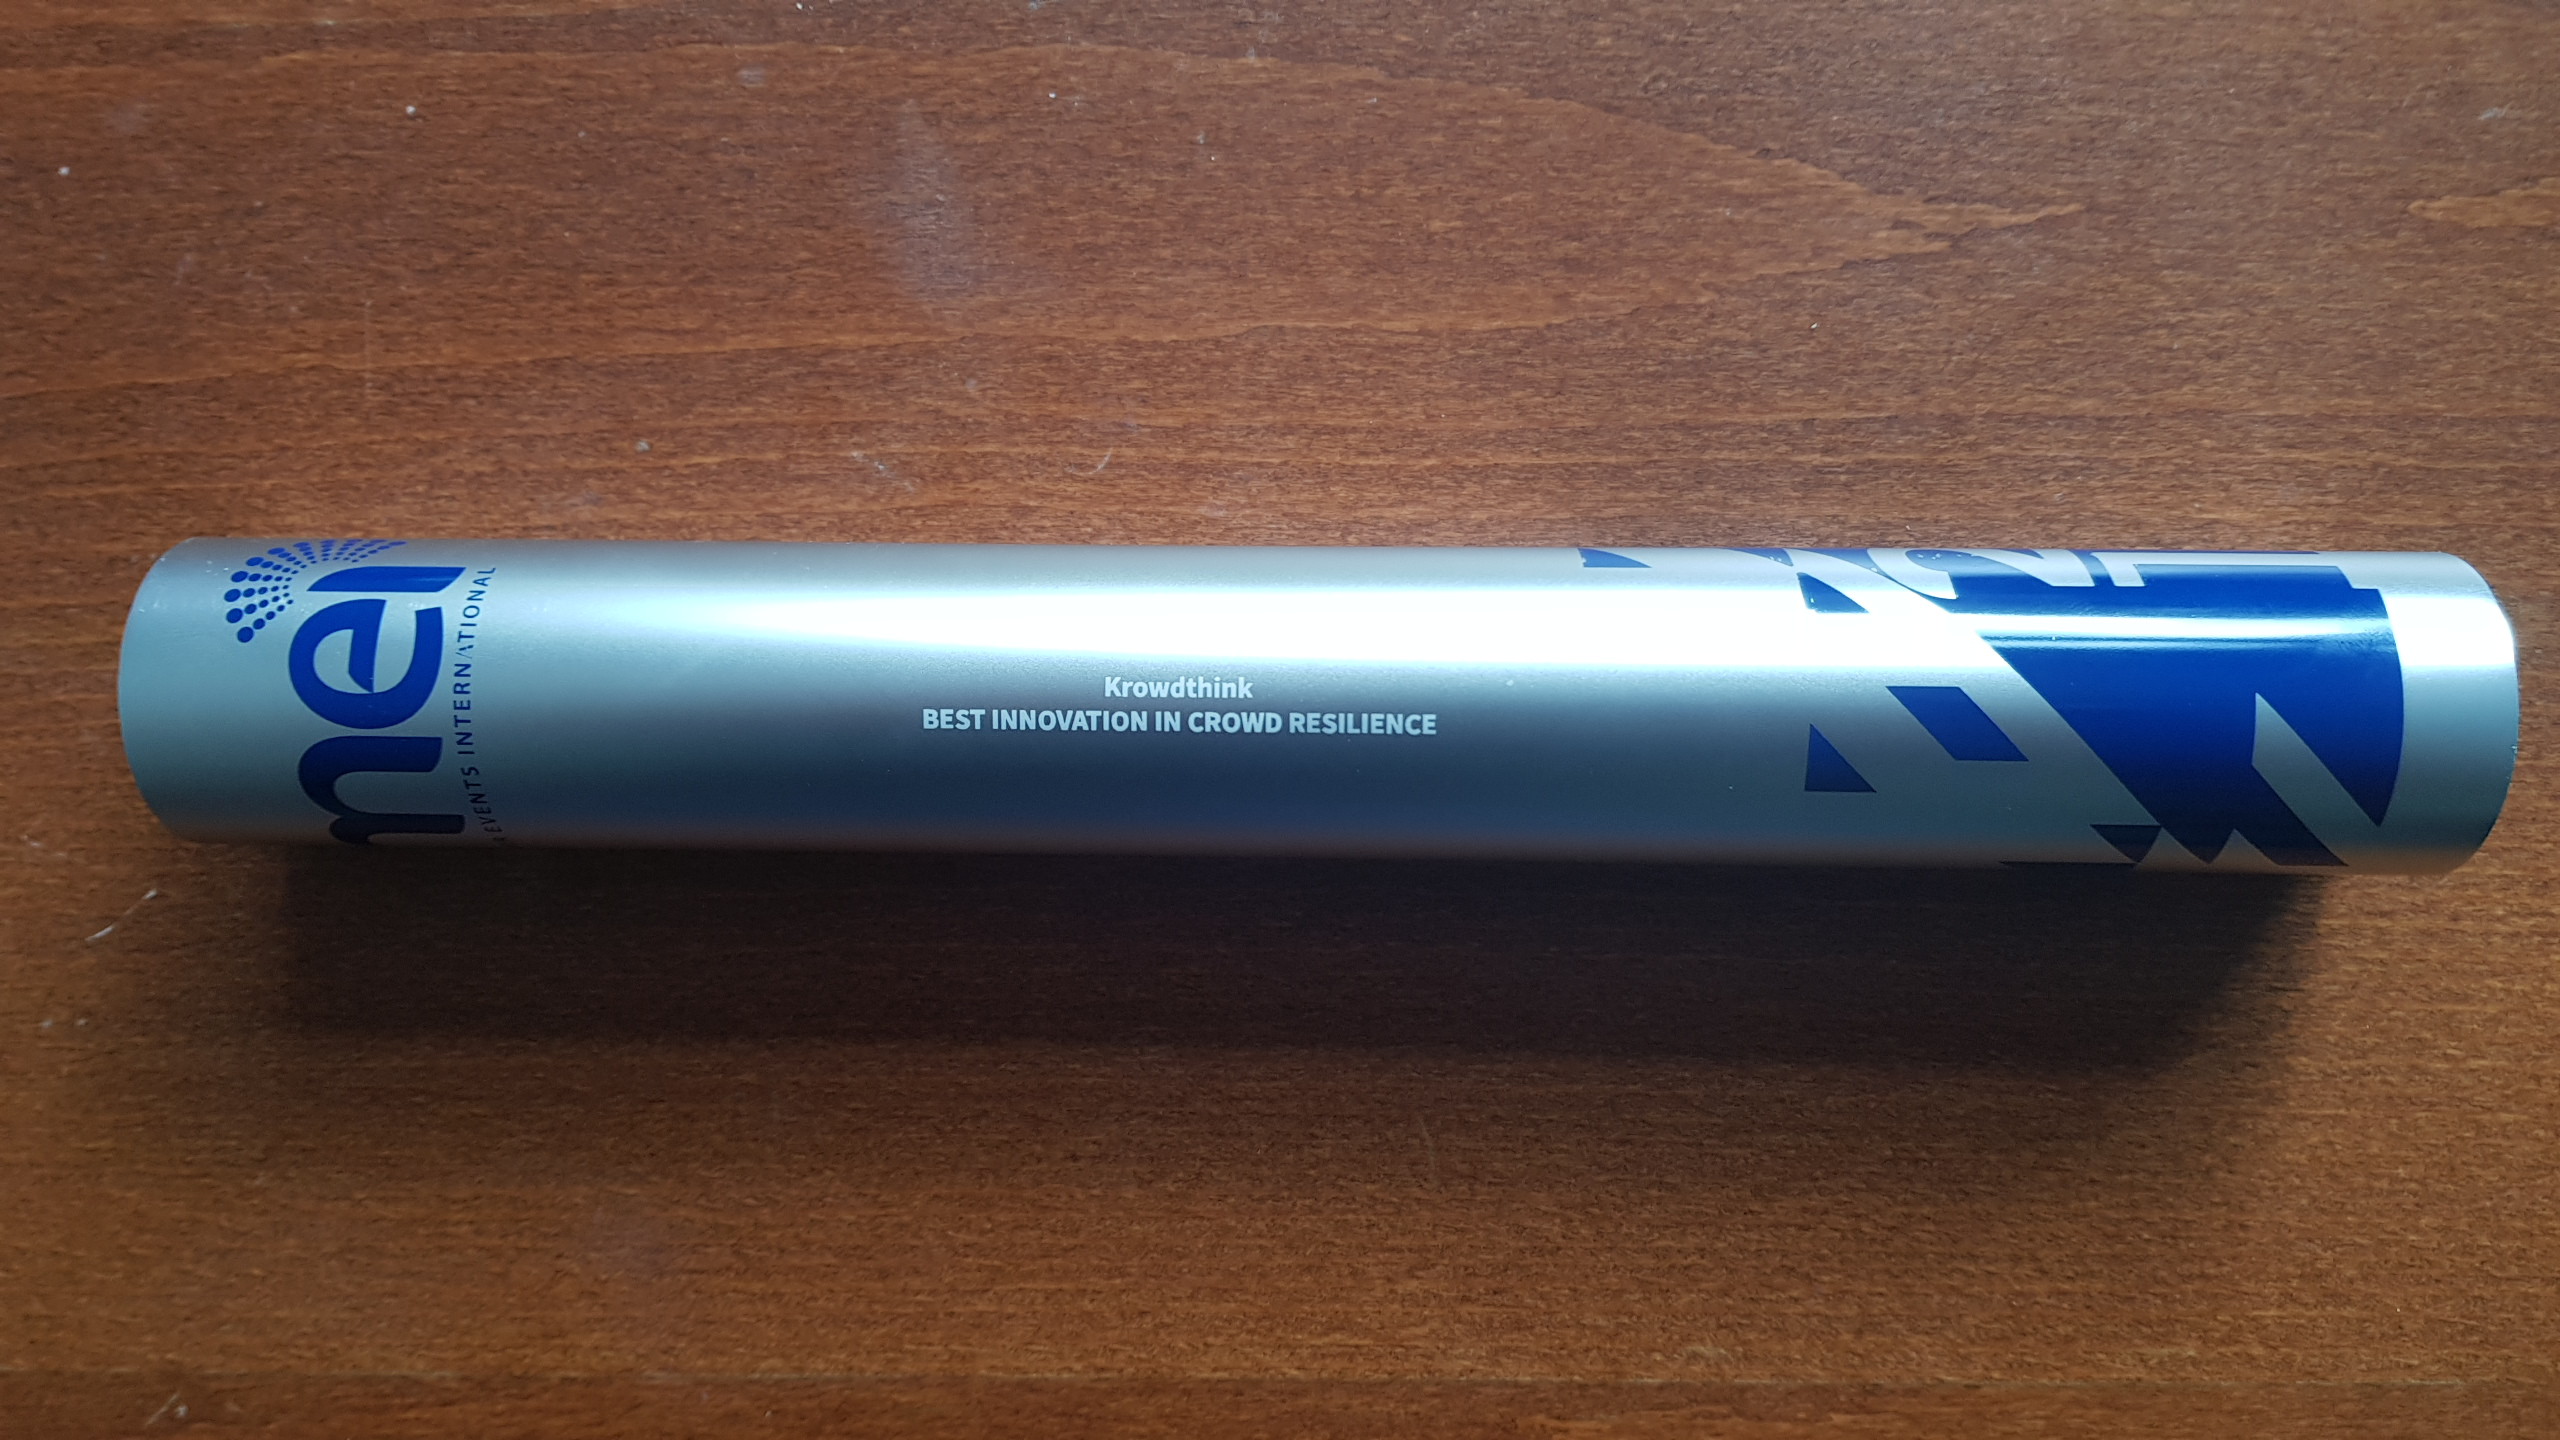 Krowdthink innovation Award Baton